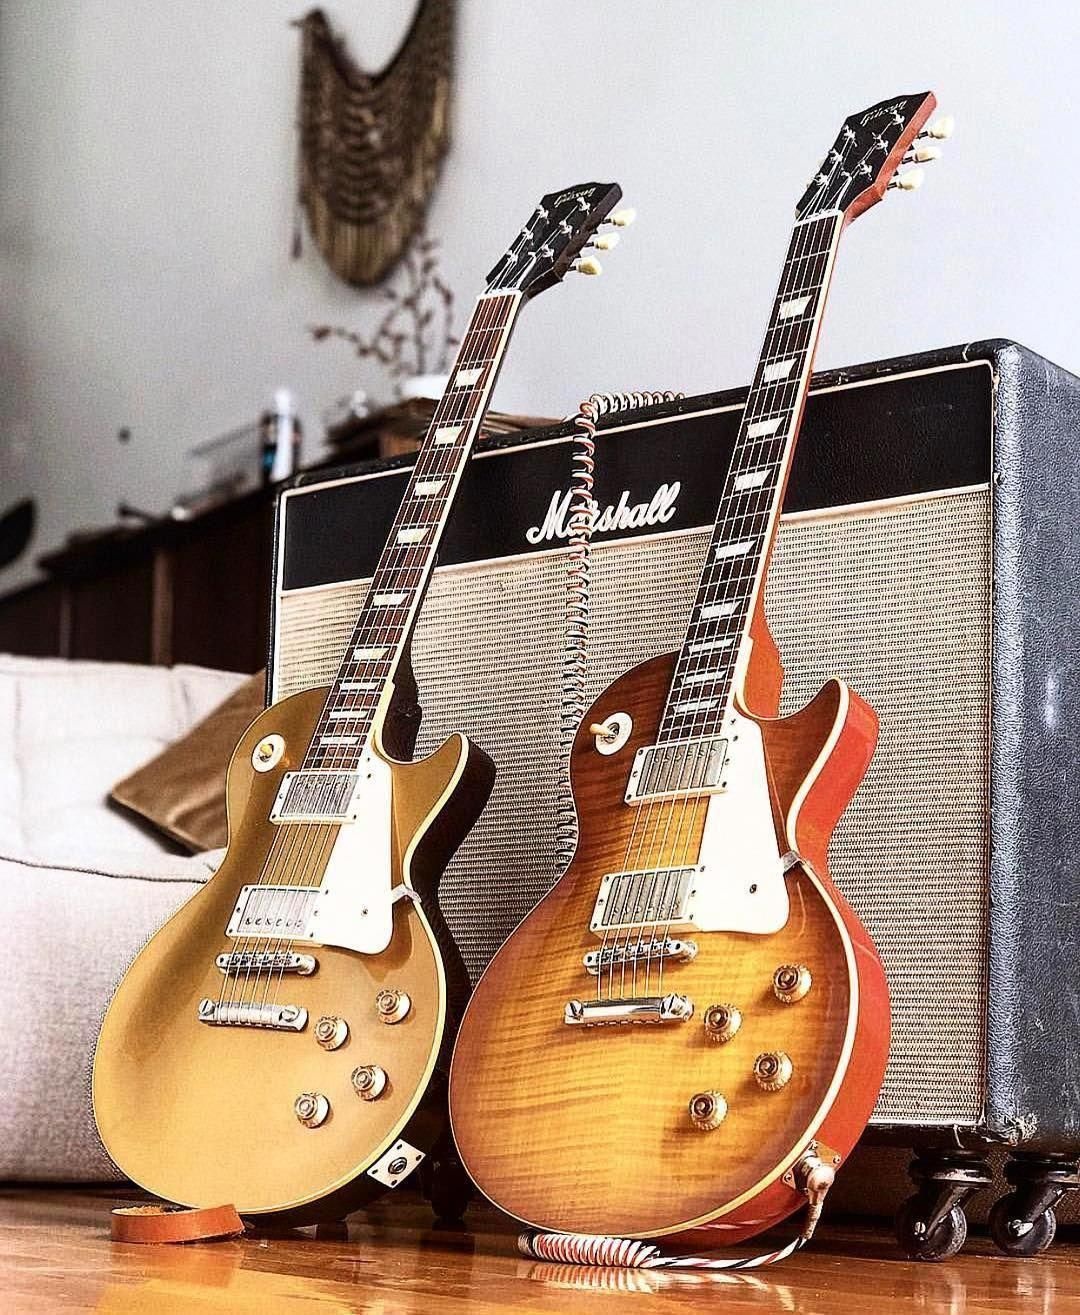 24 Amazing Electric Guitars And Amps For Sale Go Kids Electric Guitar With Amp Guitargirl Guitarpedals Electricguitar Electric Guitar Guitar Prs Guitar